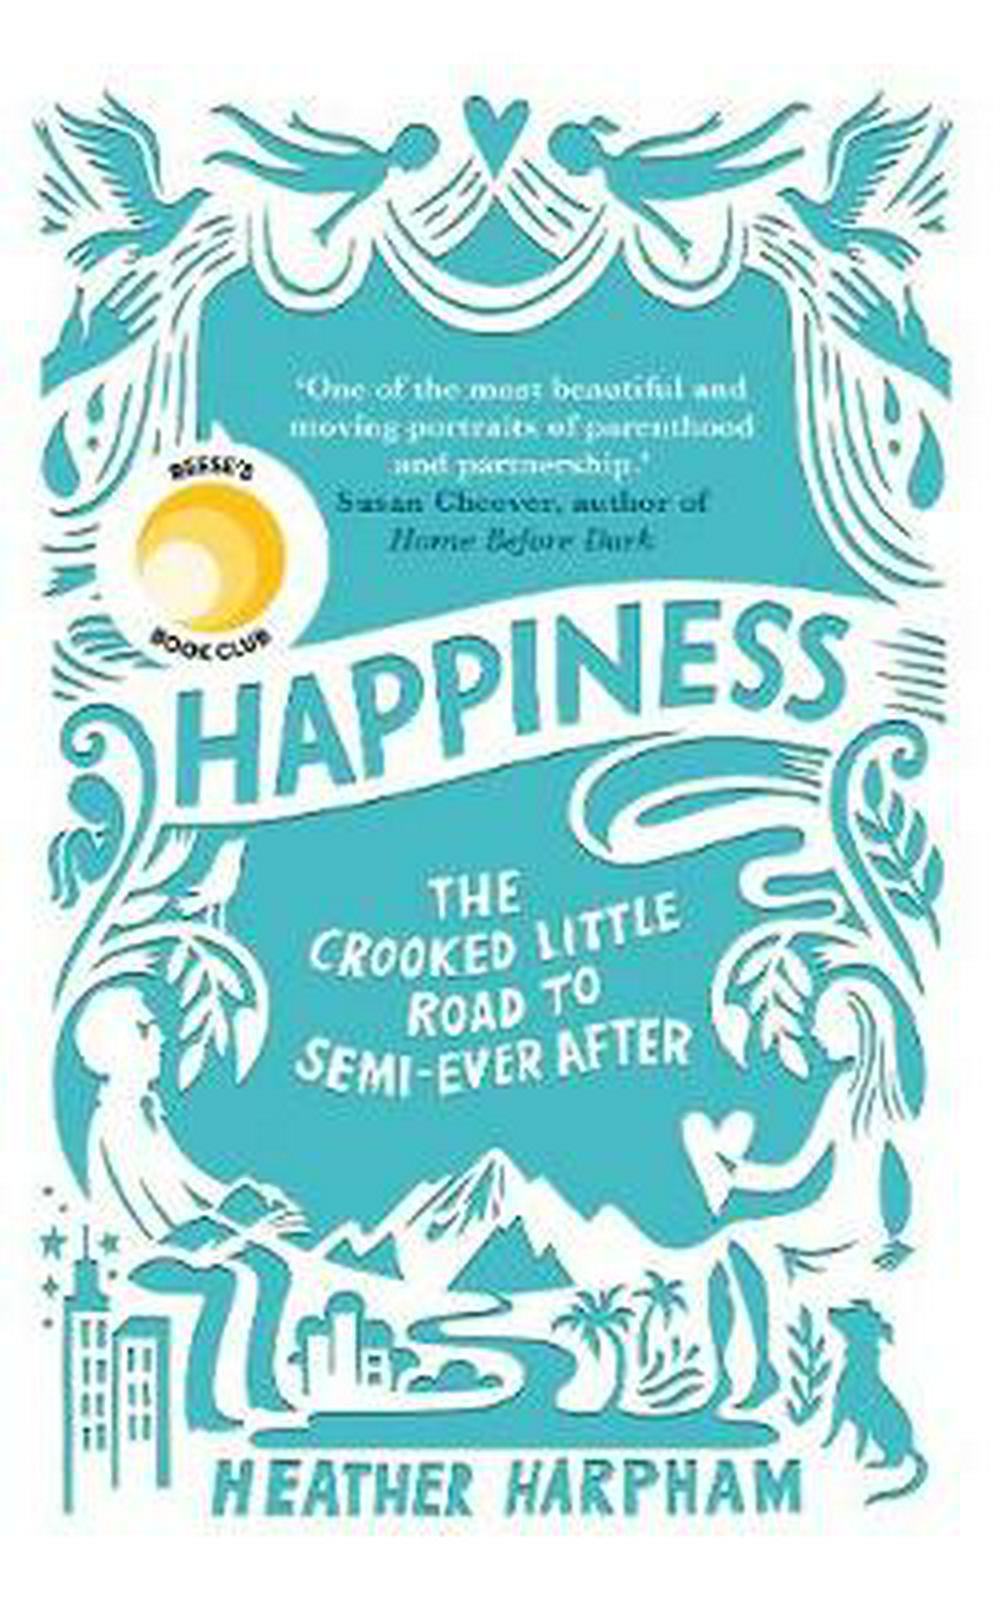 Happiness: The Crooked Little Road to Semi-Ever After by Heather Harpham, ISBN: 9781786071378